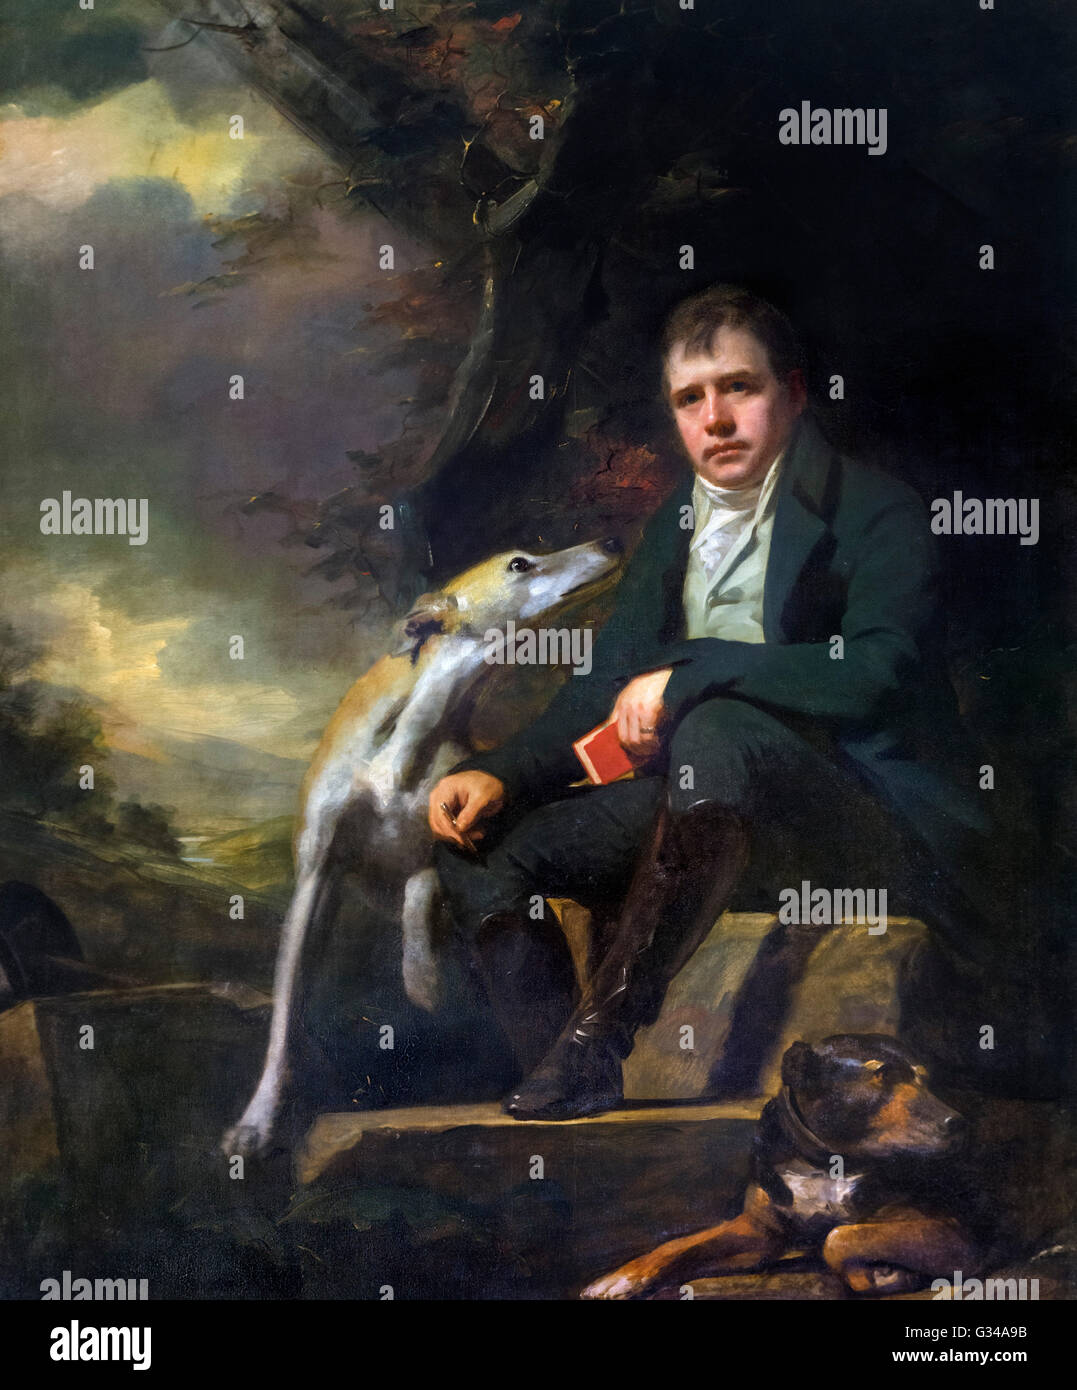 Sir Walter Scott (1771–1832) with his Dogs 'Camp' and 'Percy' by Henry Raeburn (1756–1823), oil - Stock Image